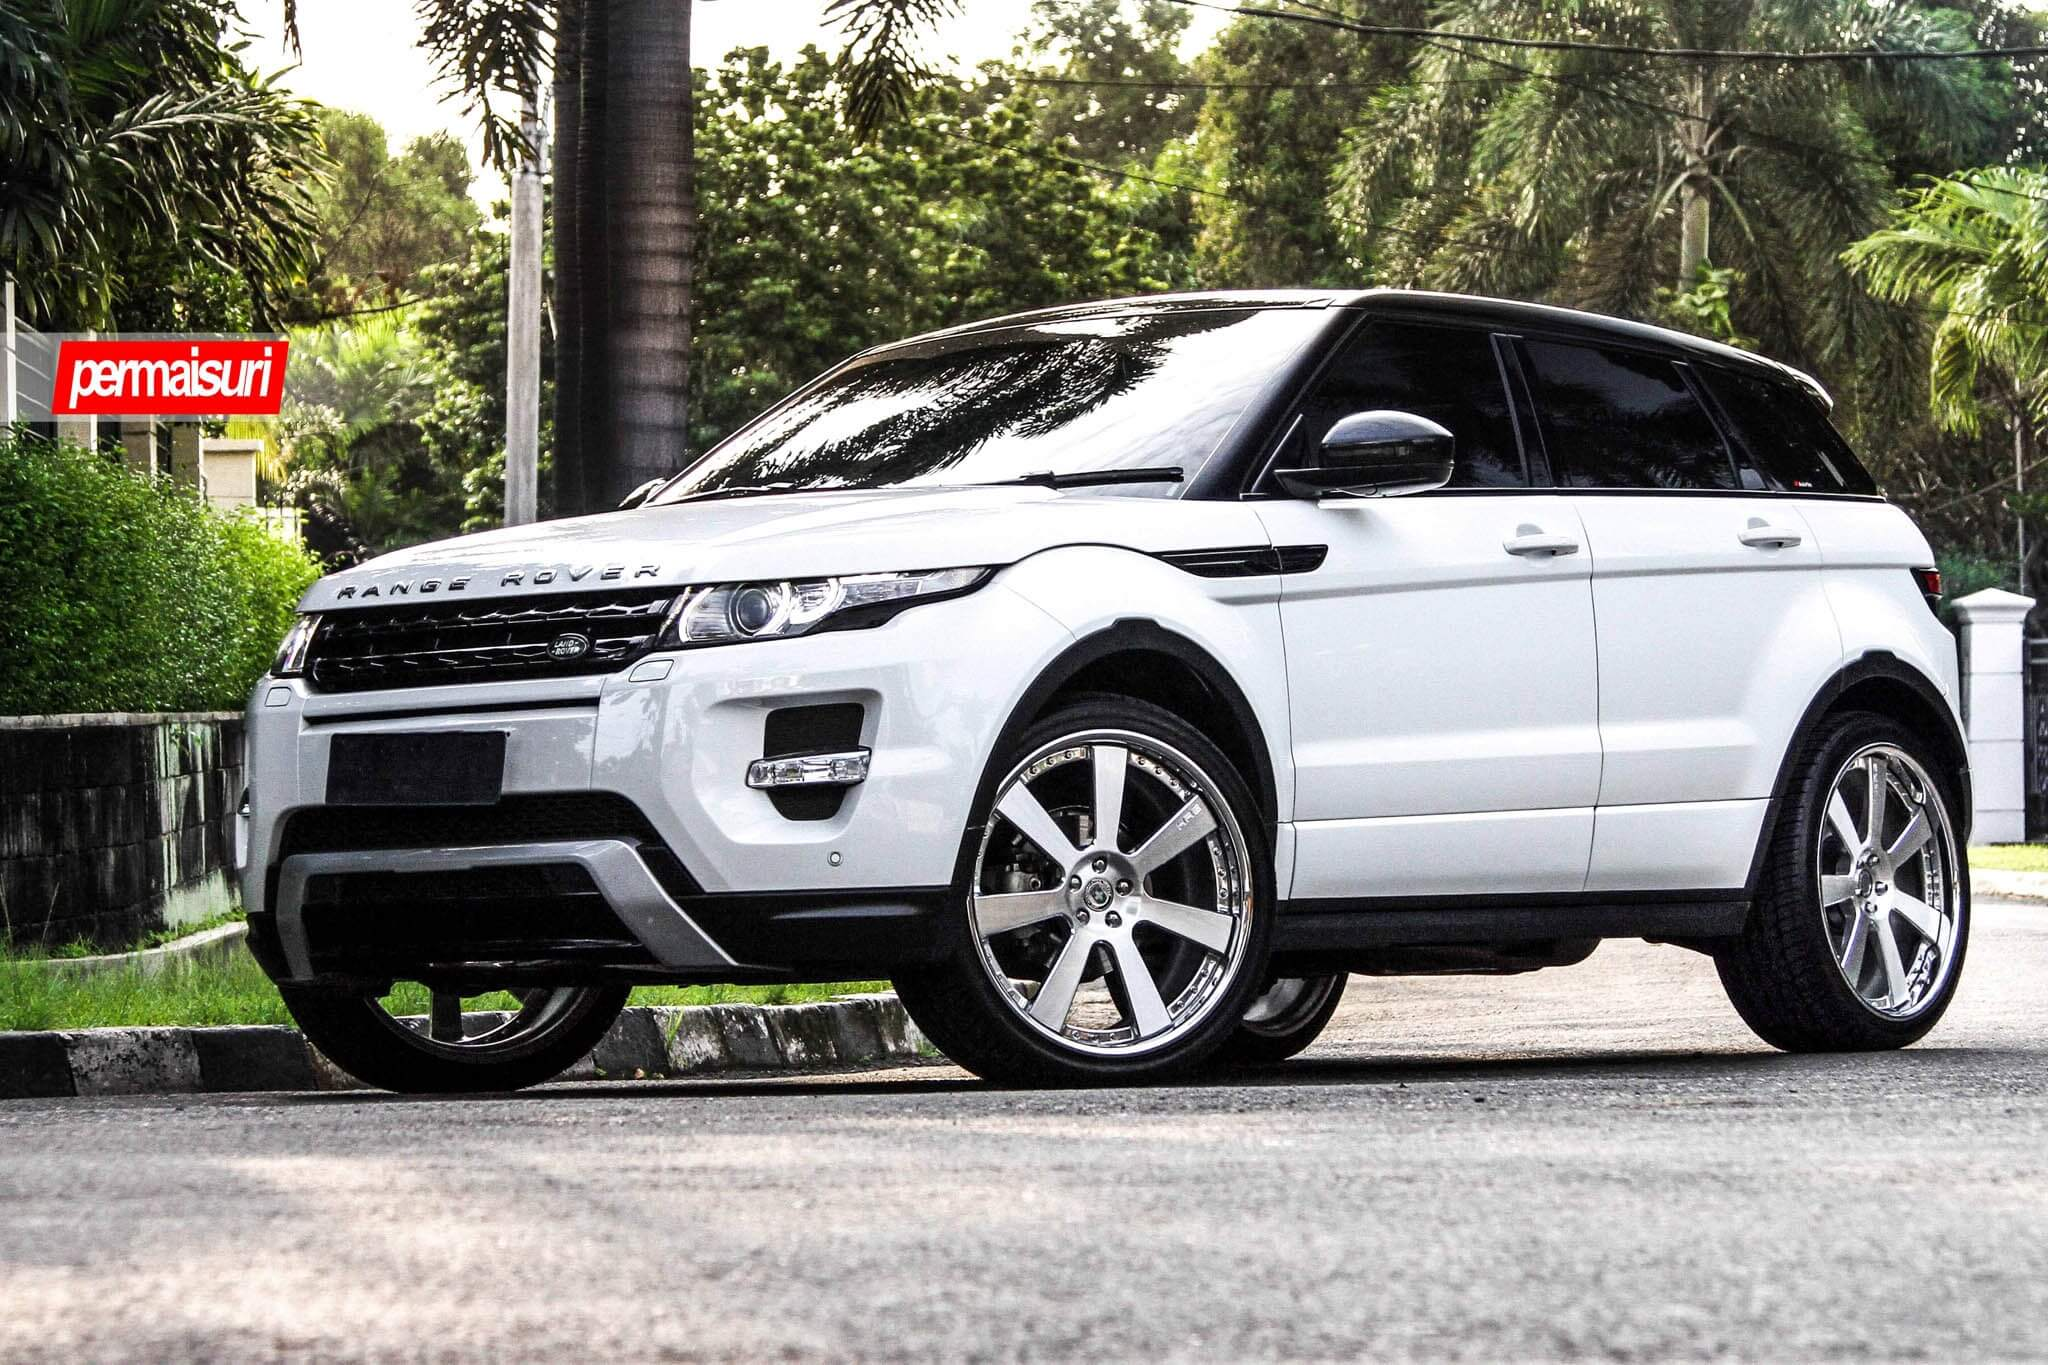 Range Rover Evoque with HRE 948RL in Brushed Clear